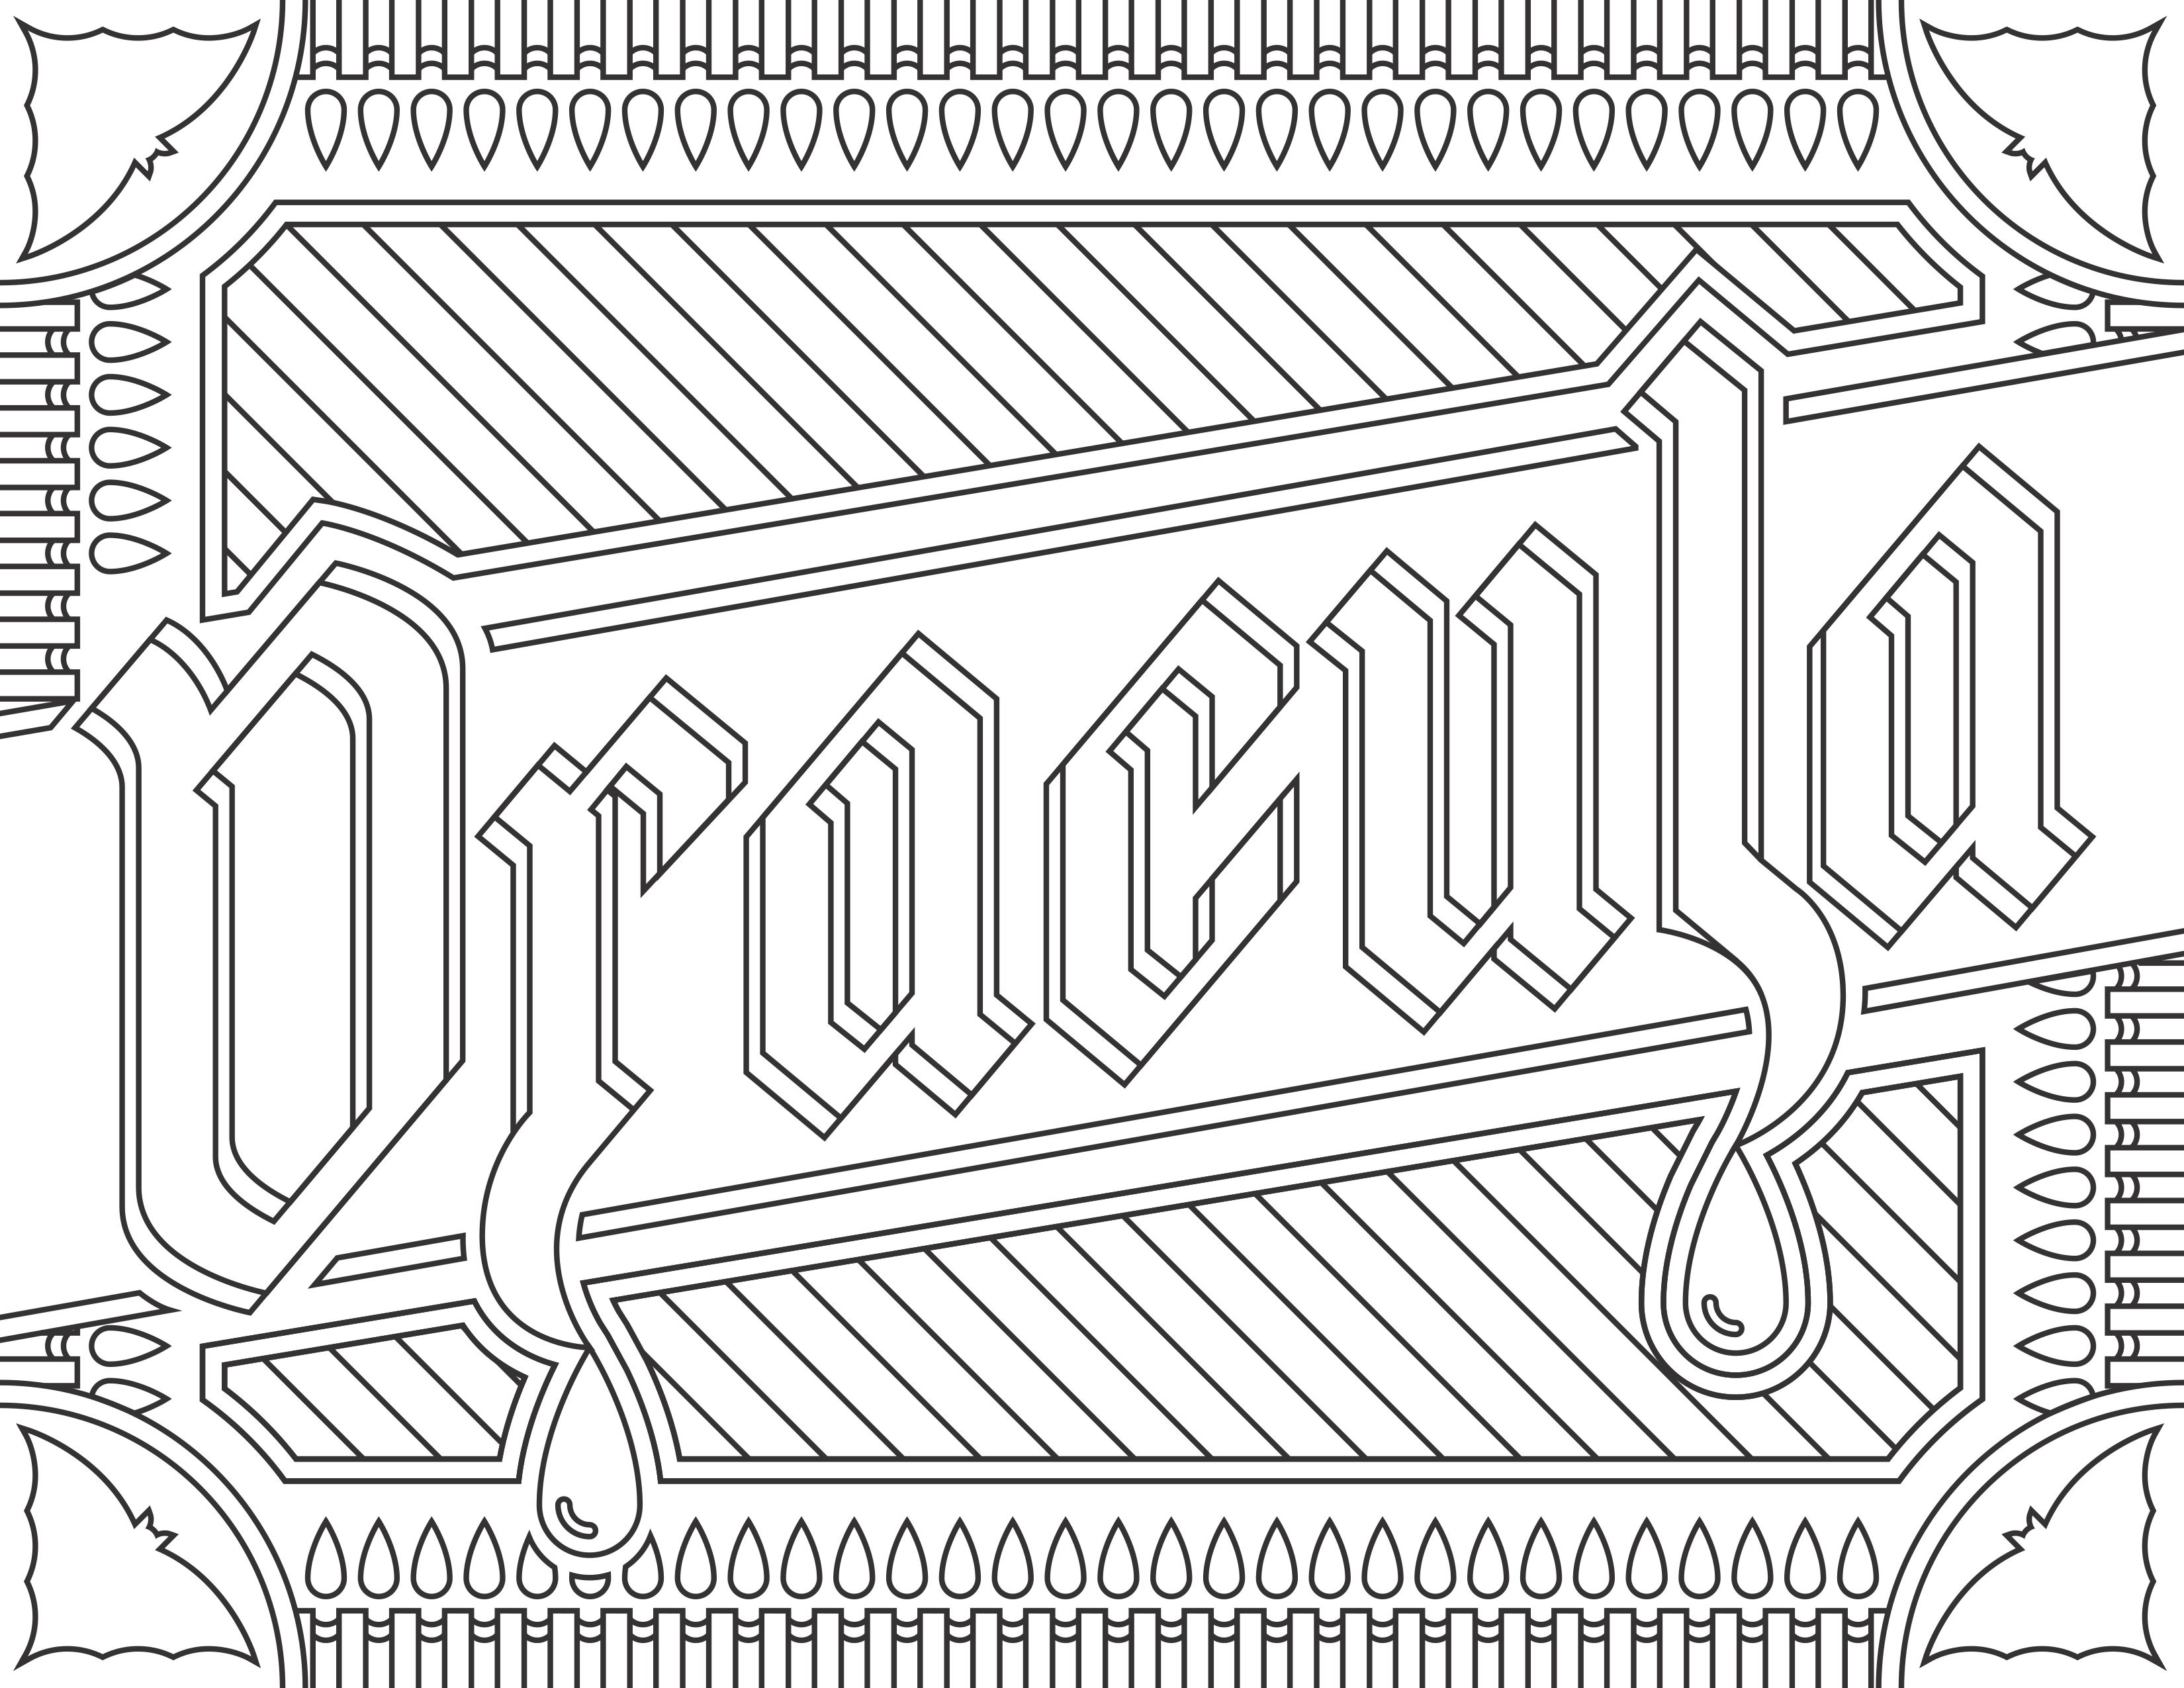 Coloring Pages For Adults : Coloring-adult-Dracula